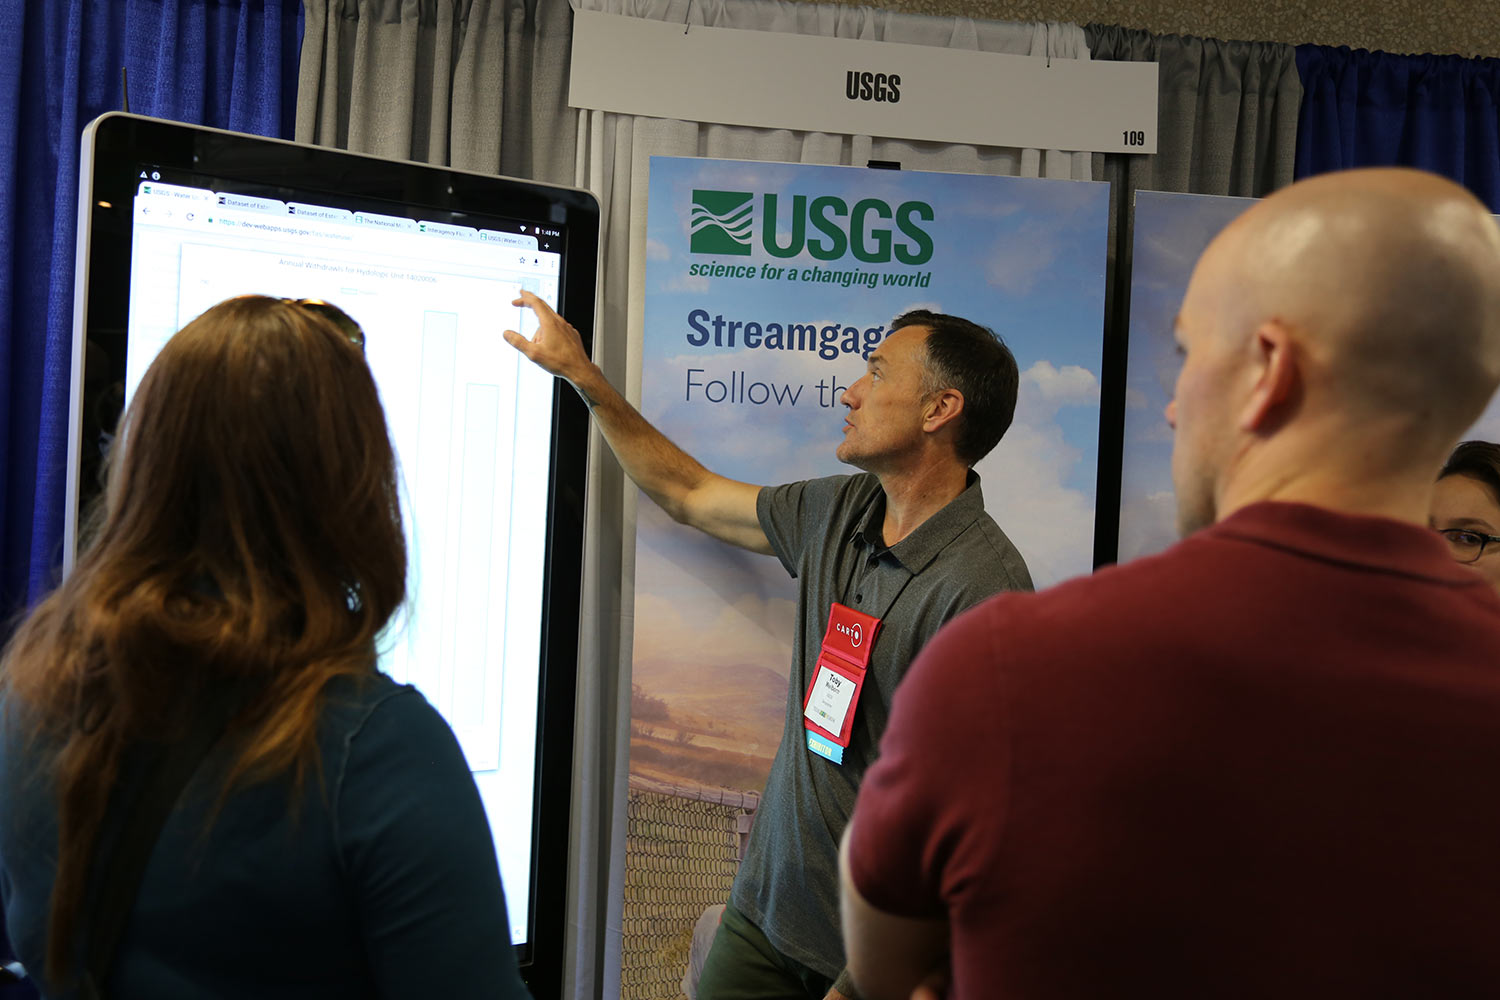 USGS booth